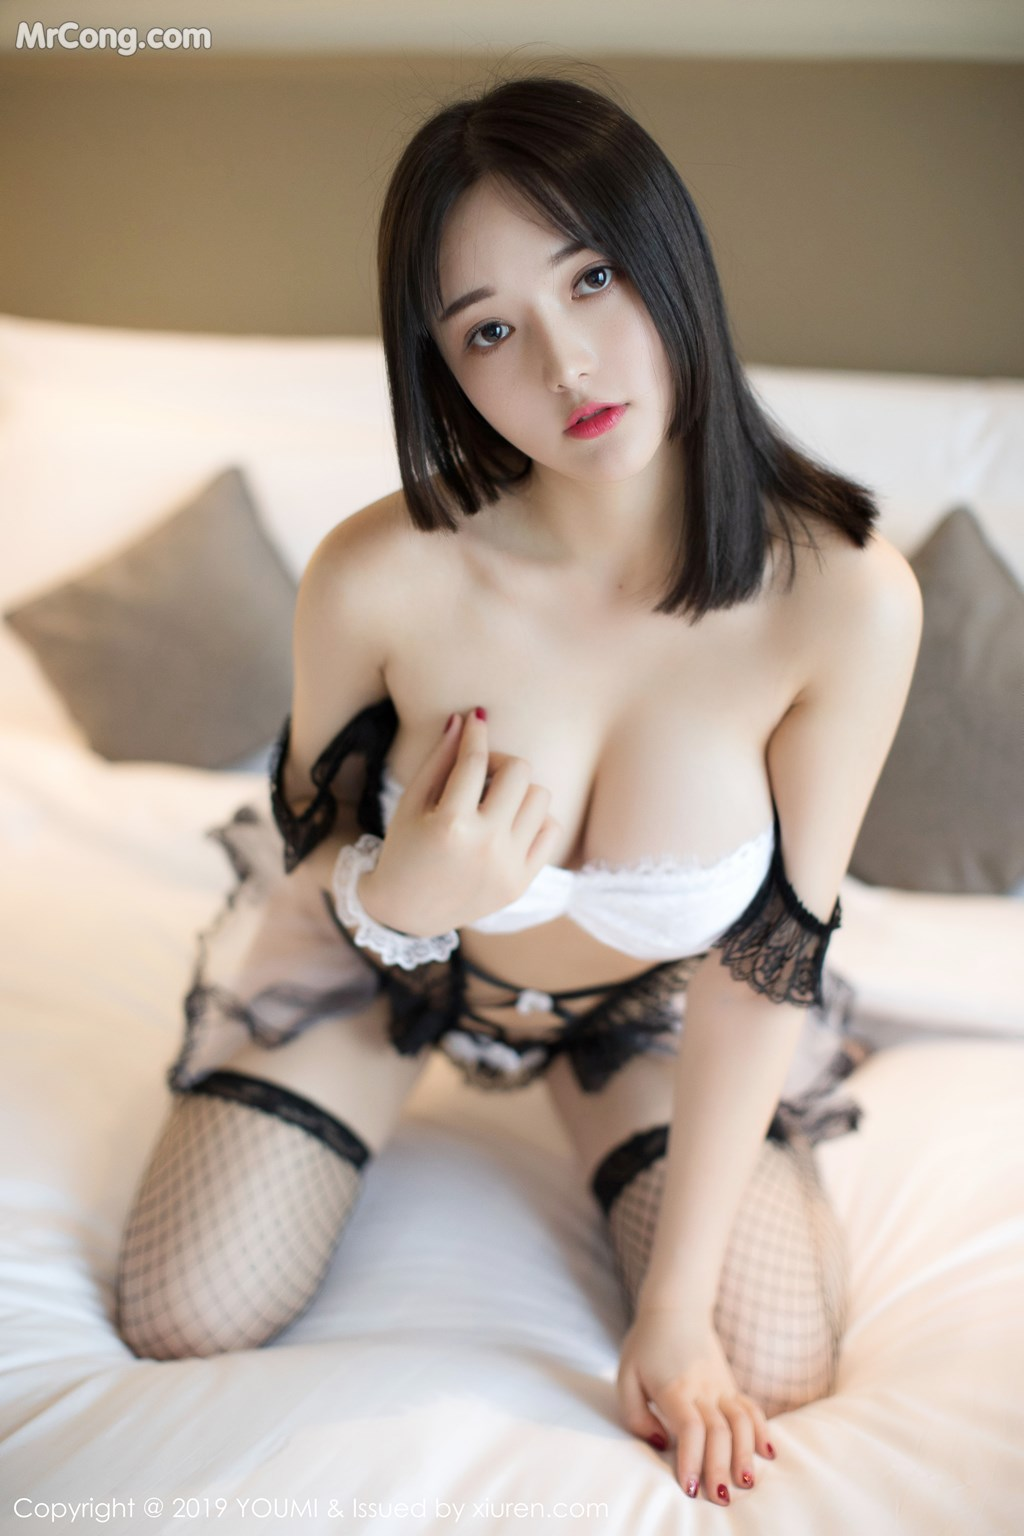 Image YouMi-Vol.275-Lucky-MrCong.com-009 in post YouMi Vol.275: 唐婉儿Lucky (47 ảnh)